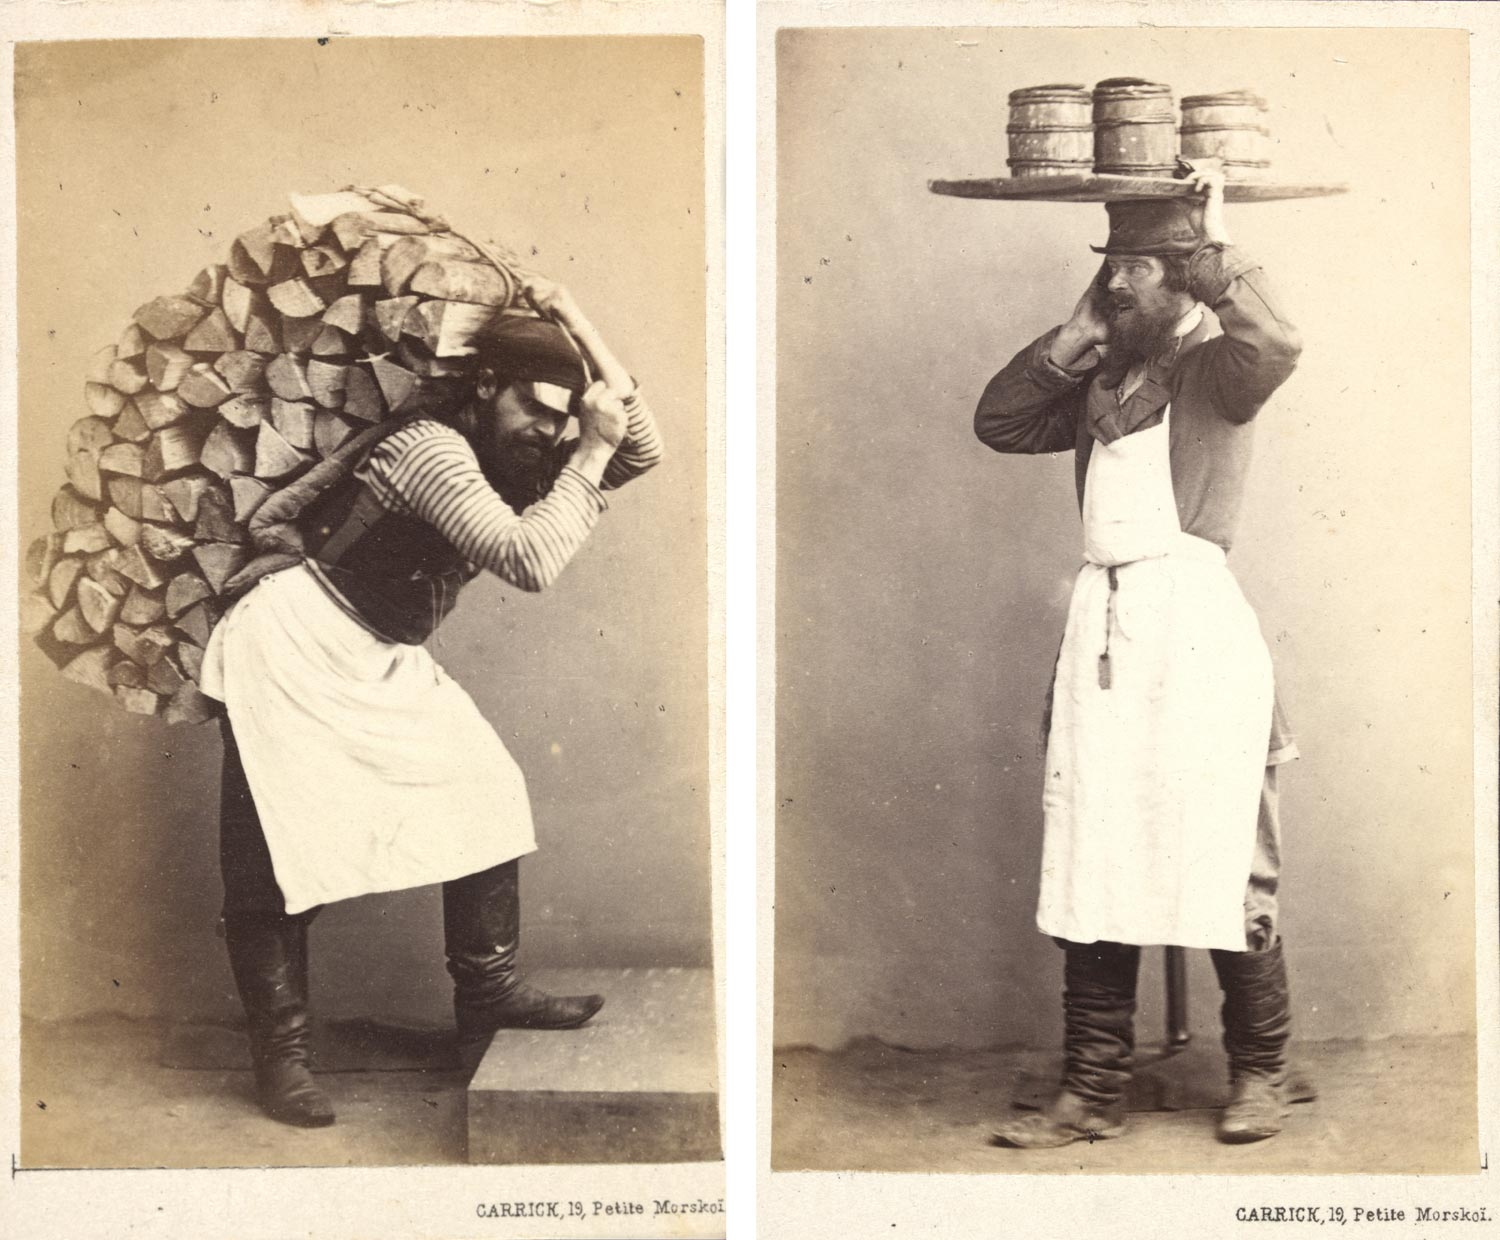 diptych image showing two sepia toned photographs of a man. On the left he is carrying a sack of logs and on the right he is carrying a tray of small barrels above his head